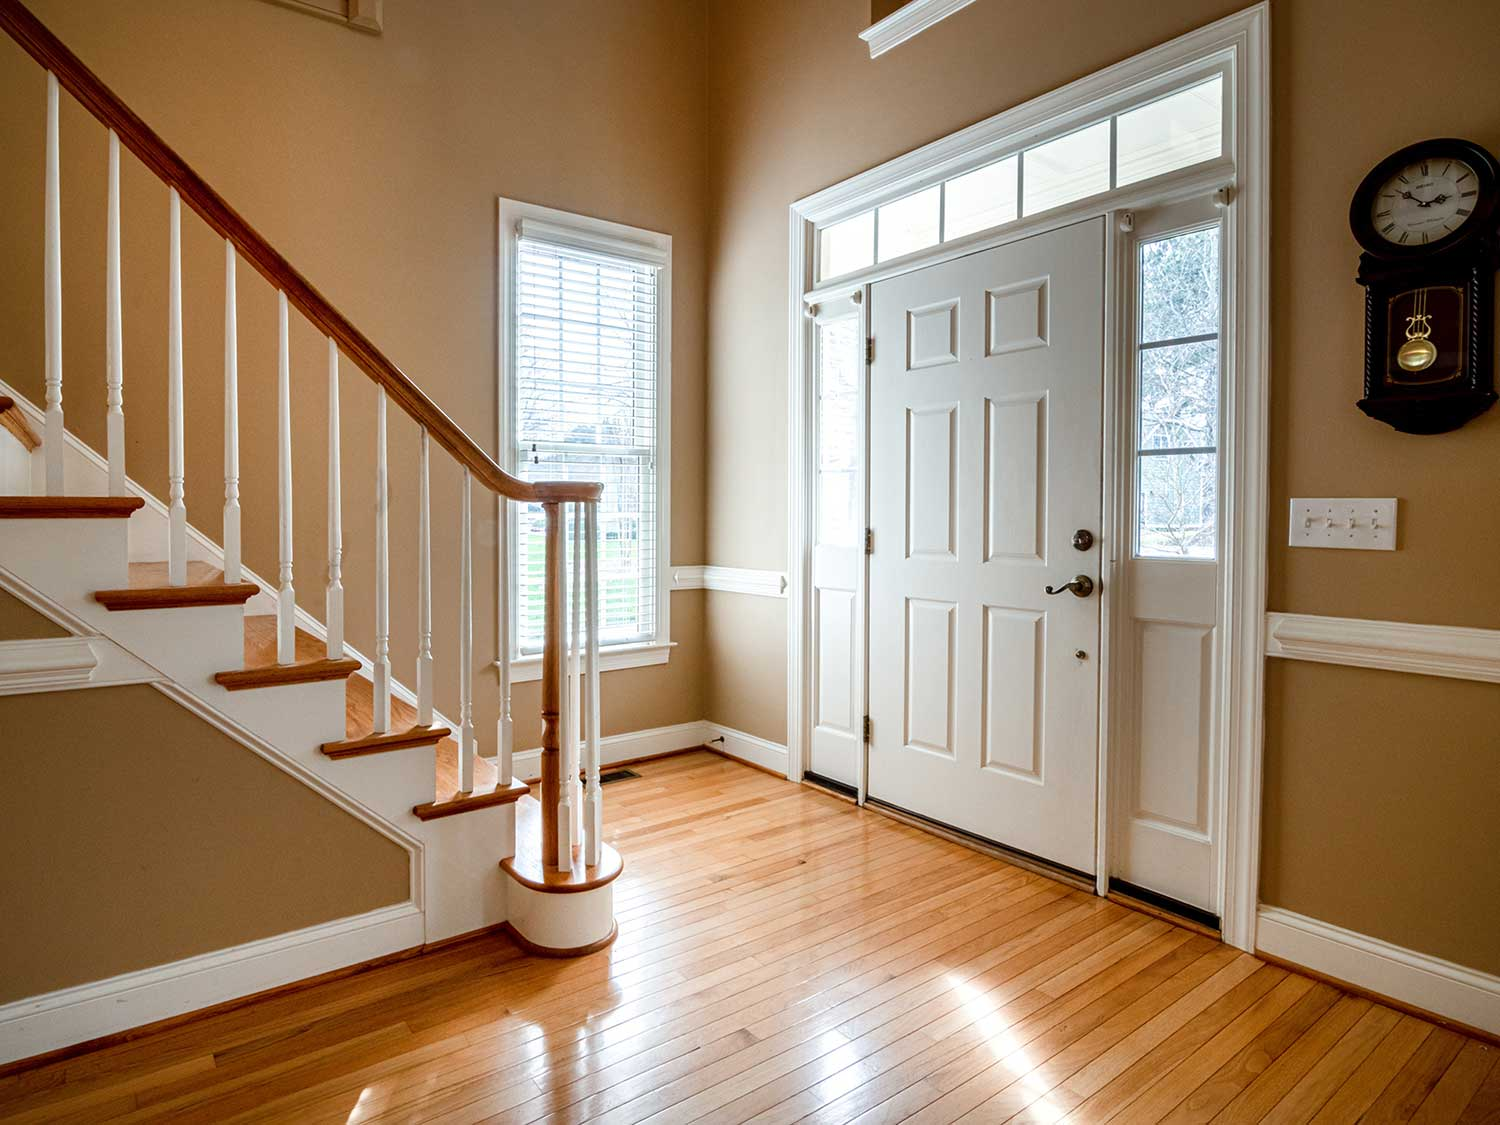 Entryway in home.